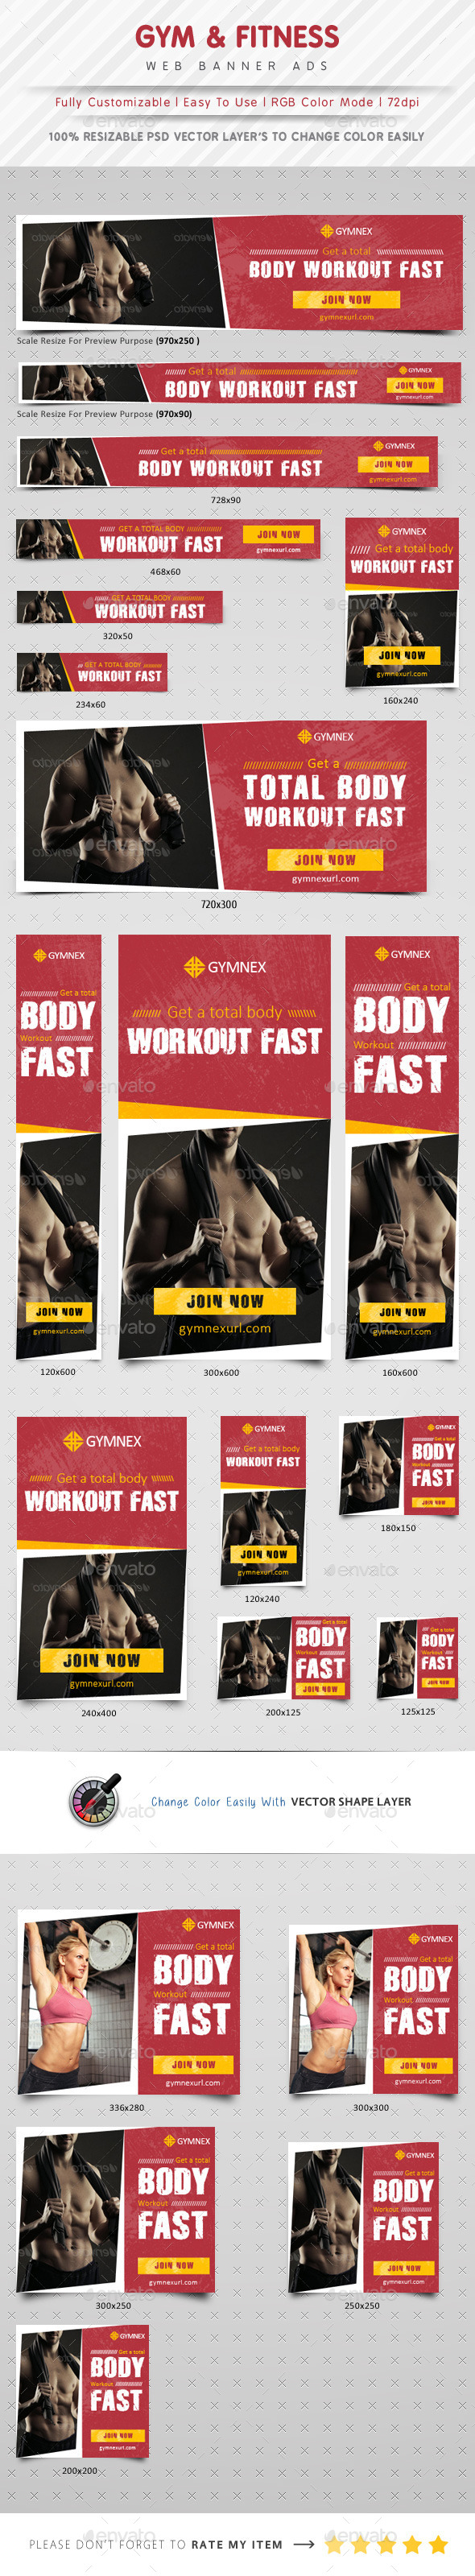 GYM & Fitness Web Banner Ads - Banners & Ads Web Elements